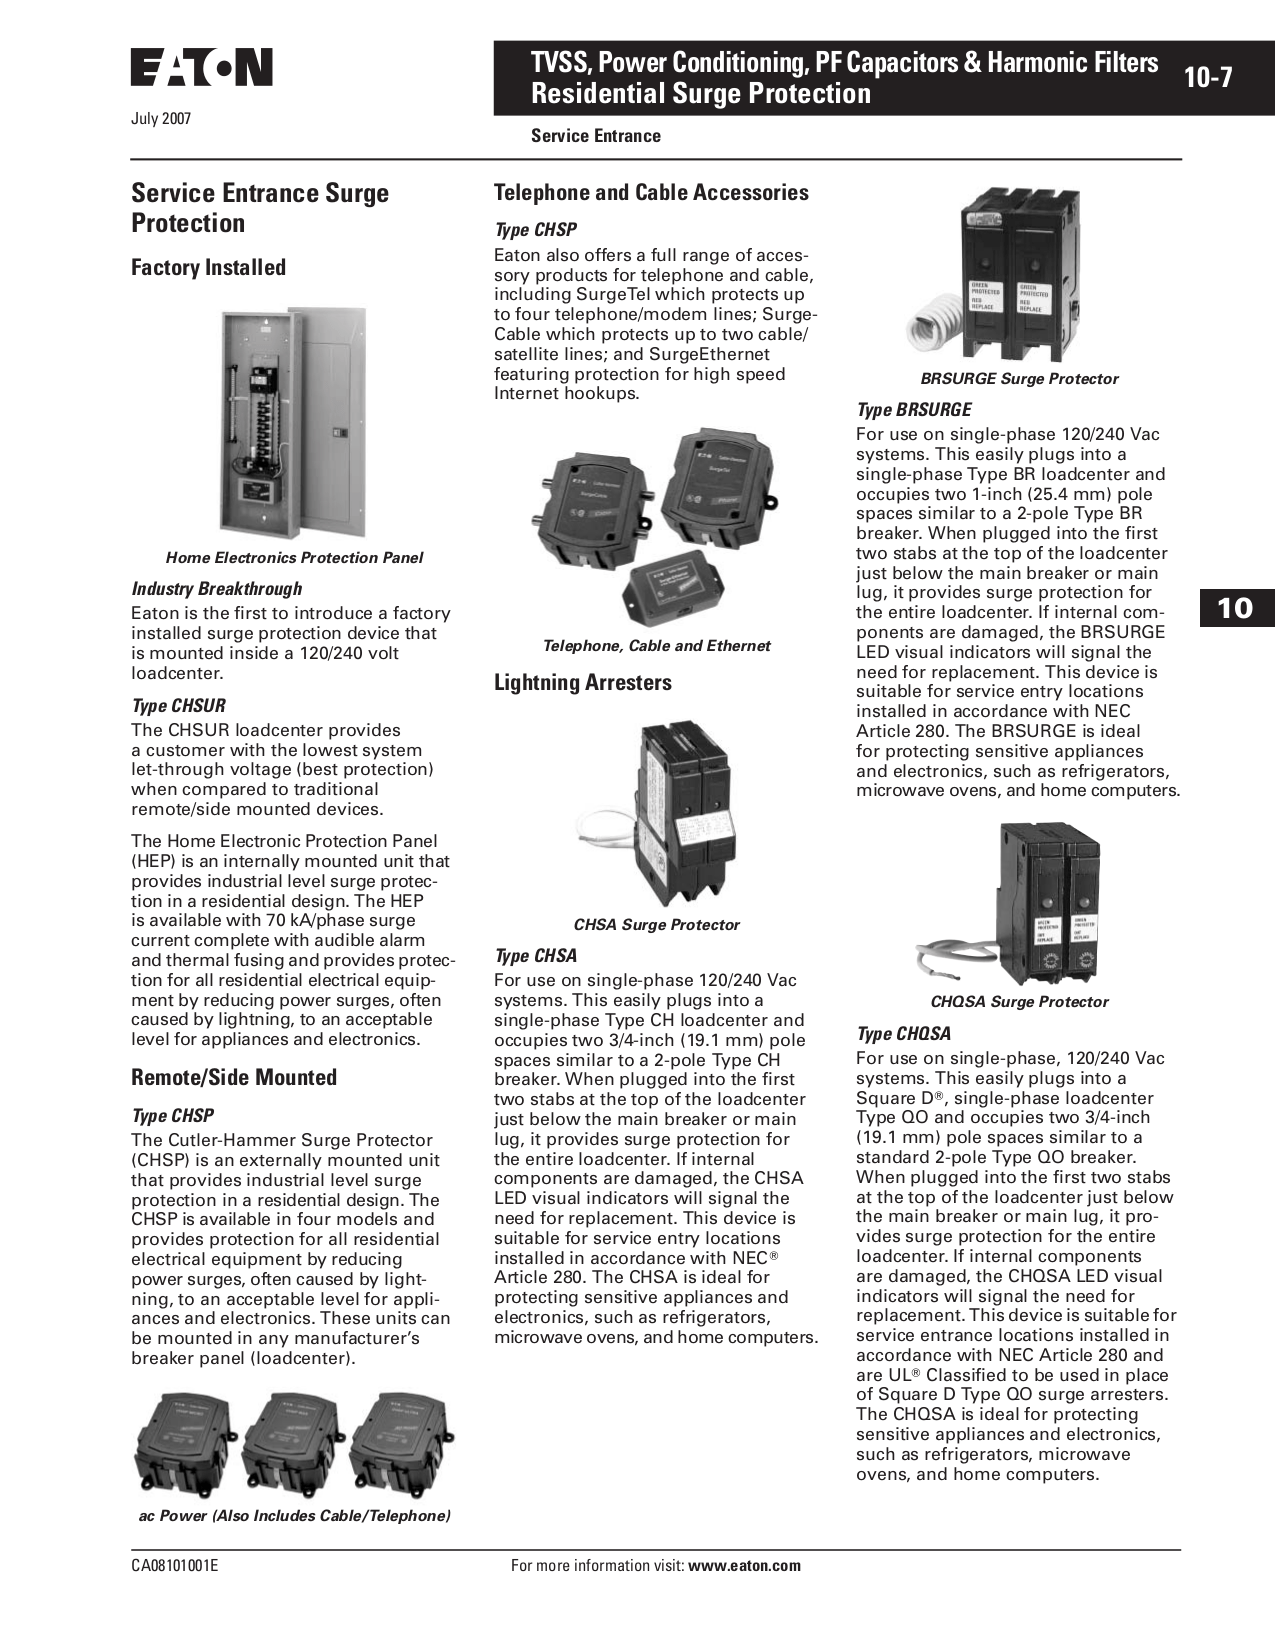 PDF manual for Intermatic Other AG2401 Surge Arrester